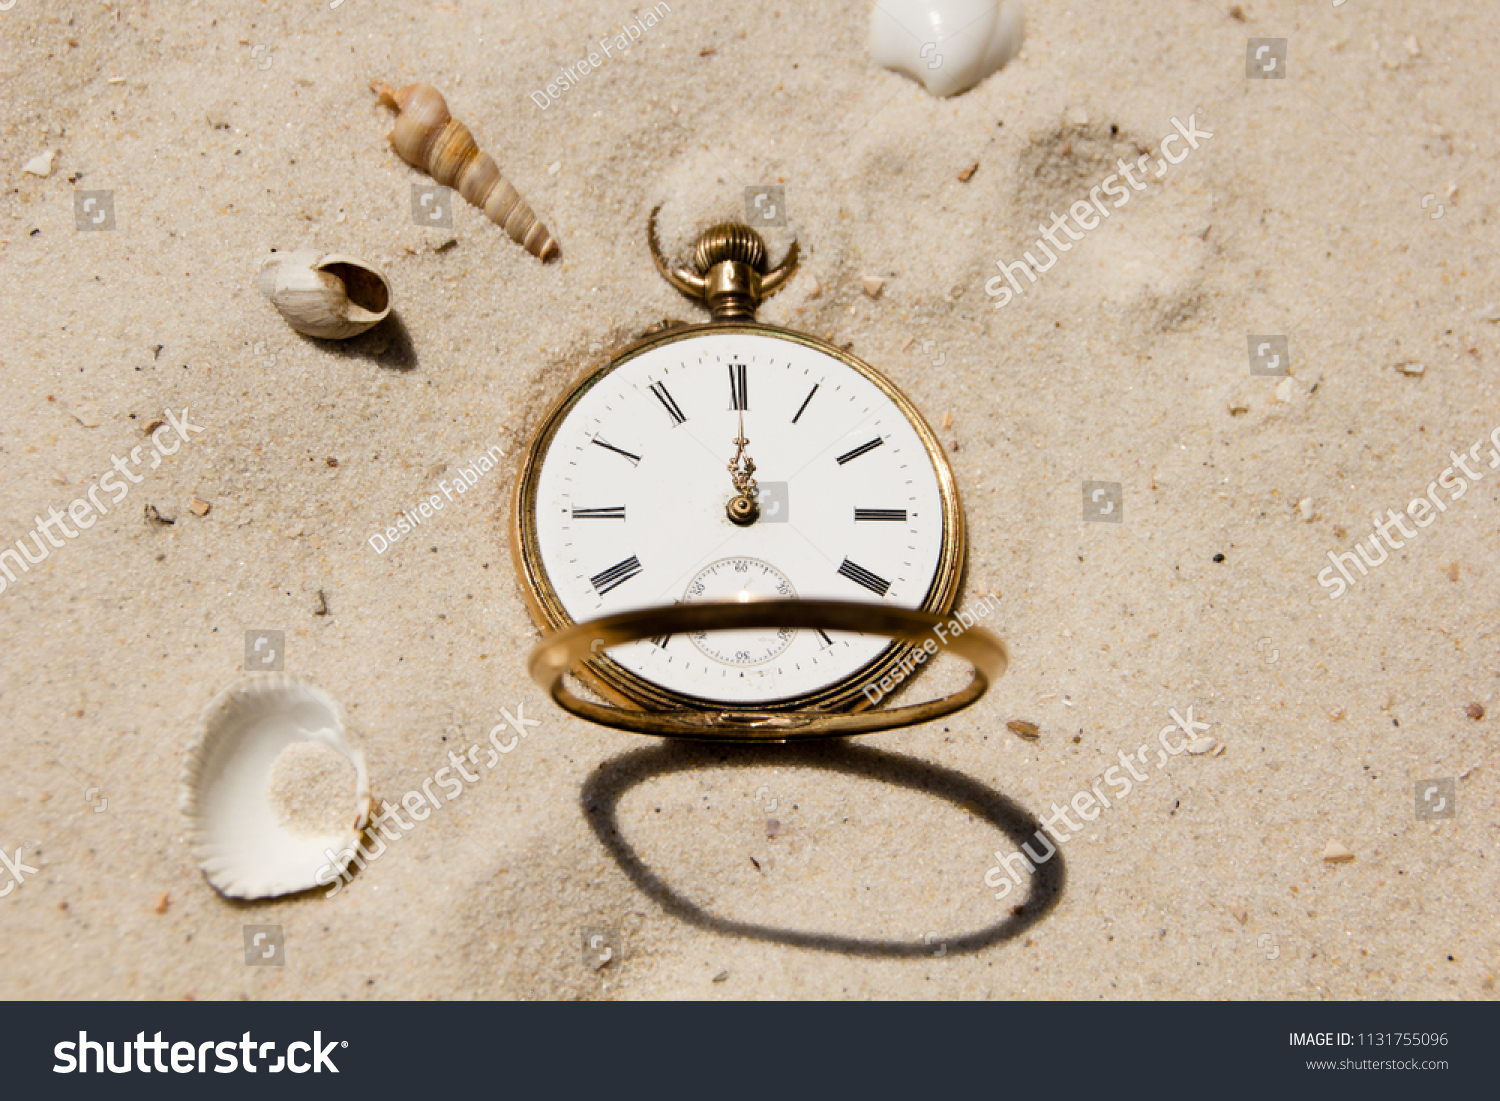 Old Antique Watch Sand Beach Shells Stock Photo (Edit Now